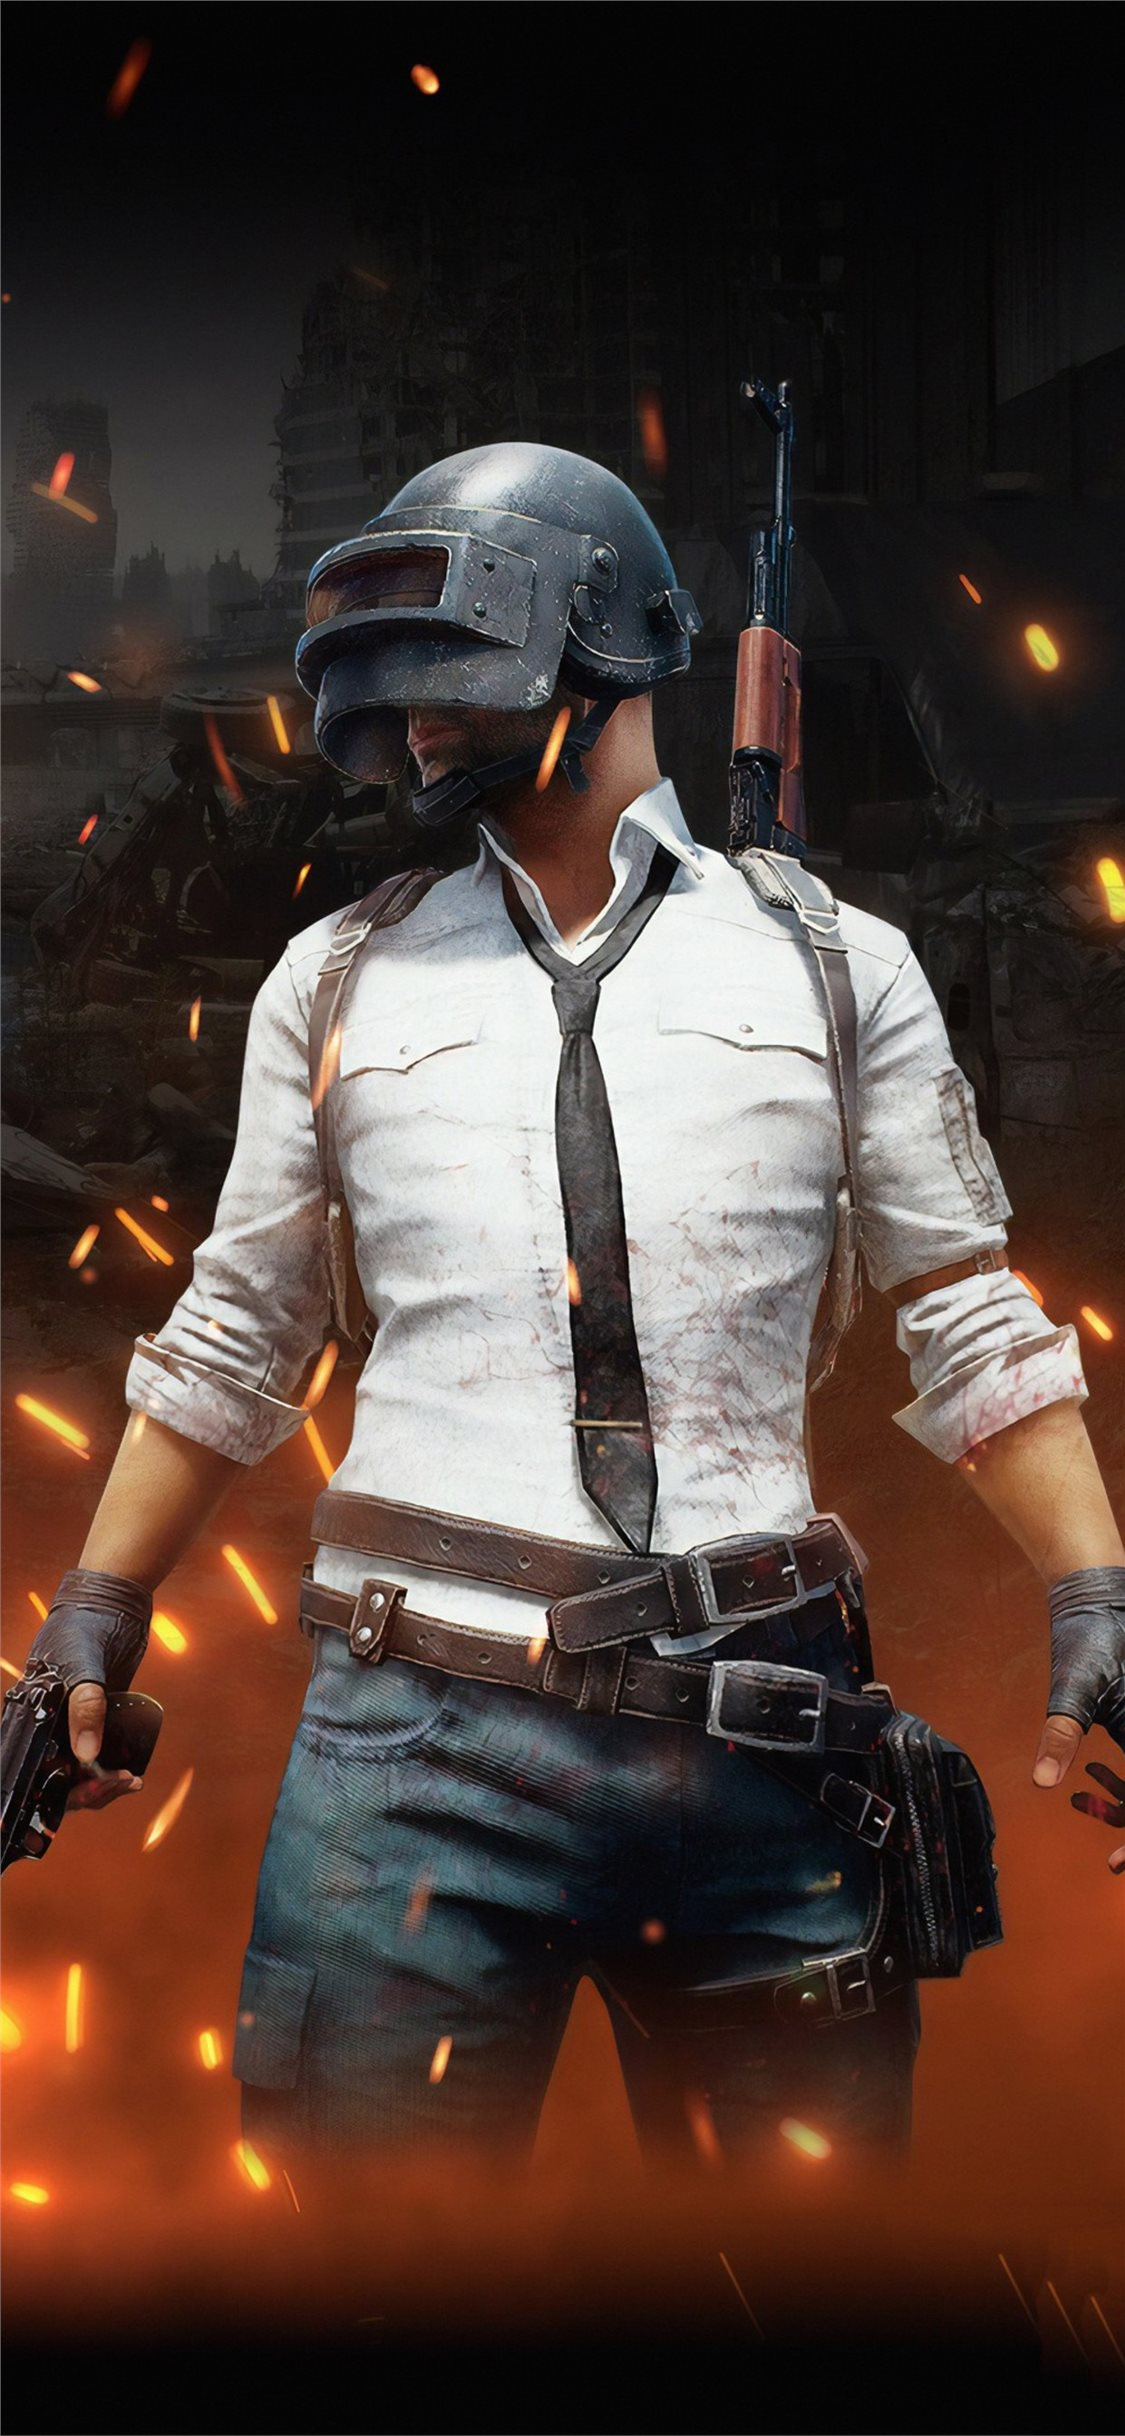 pubg 2019 4k game iphone x wallpaper ilikewallpaper com